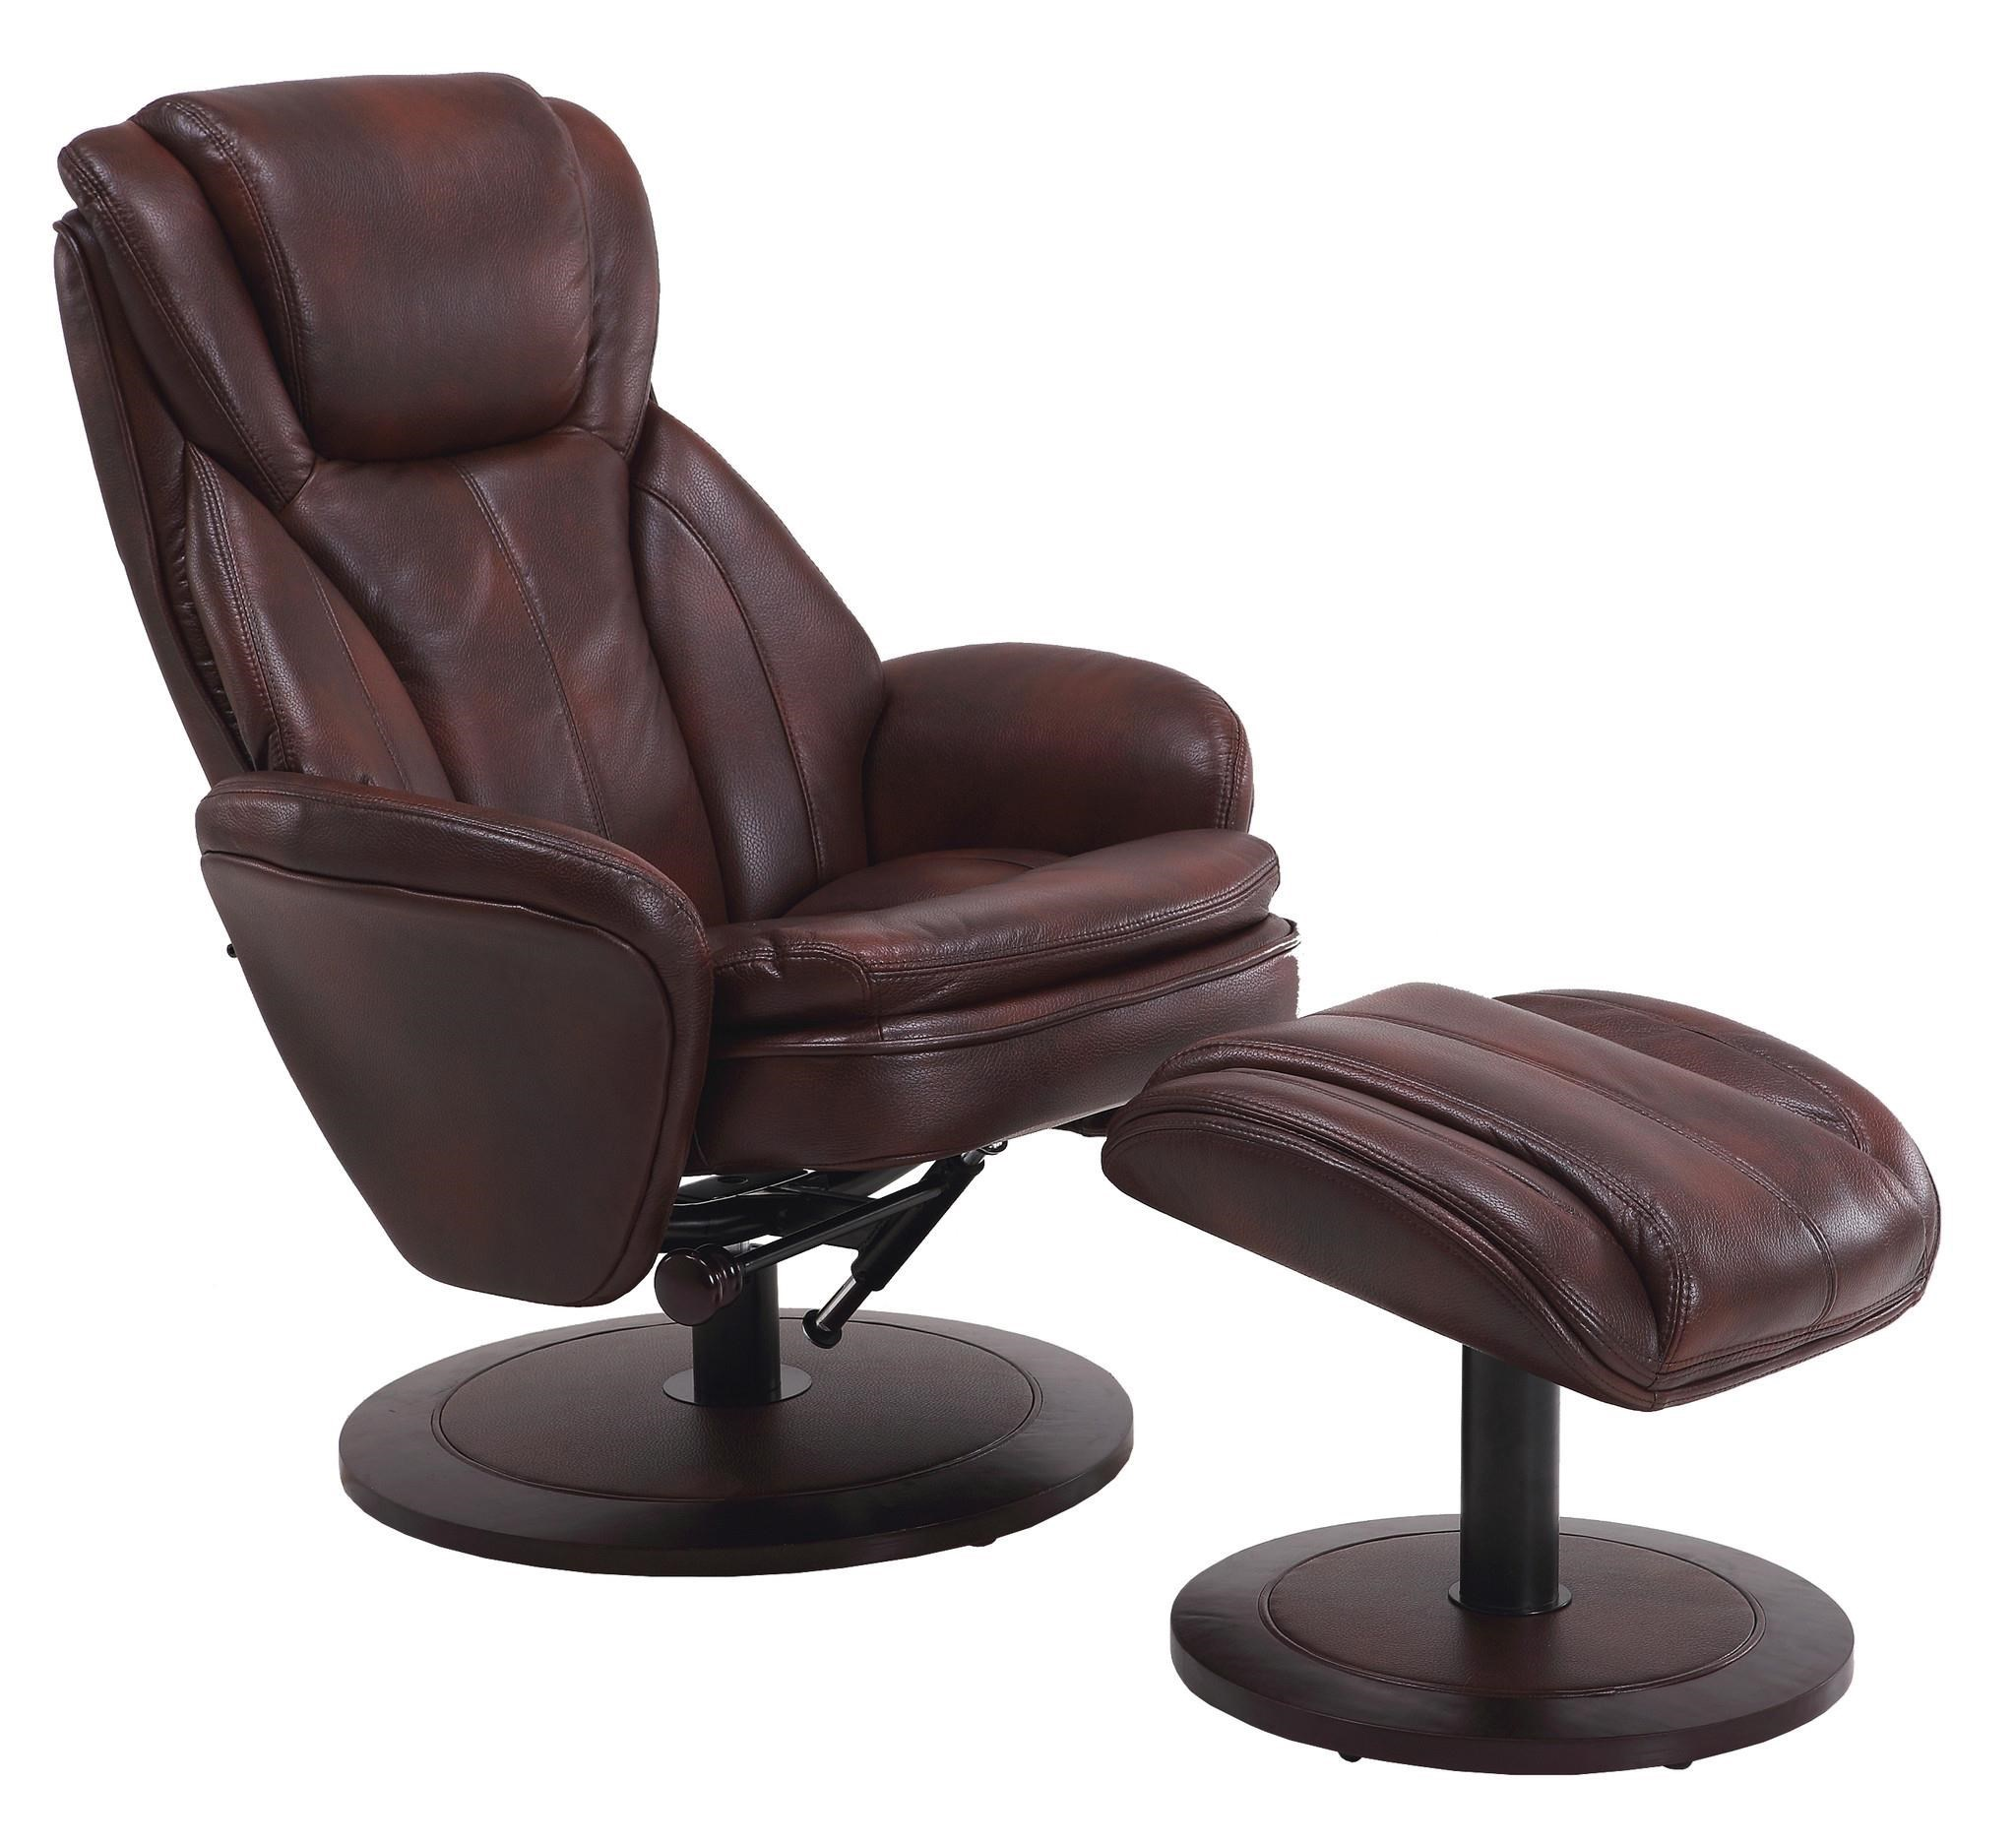 Mac Motion Chairs Mac Motion ChairsNorway Reclining Chair U0026 Ottoman